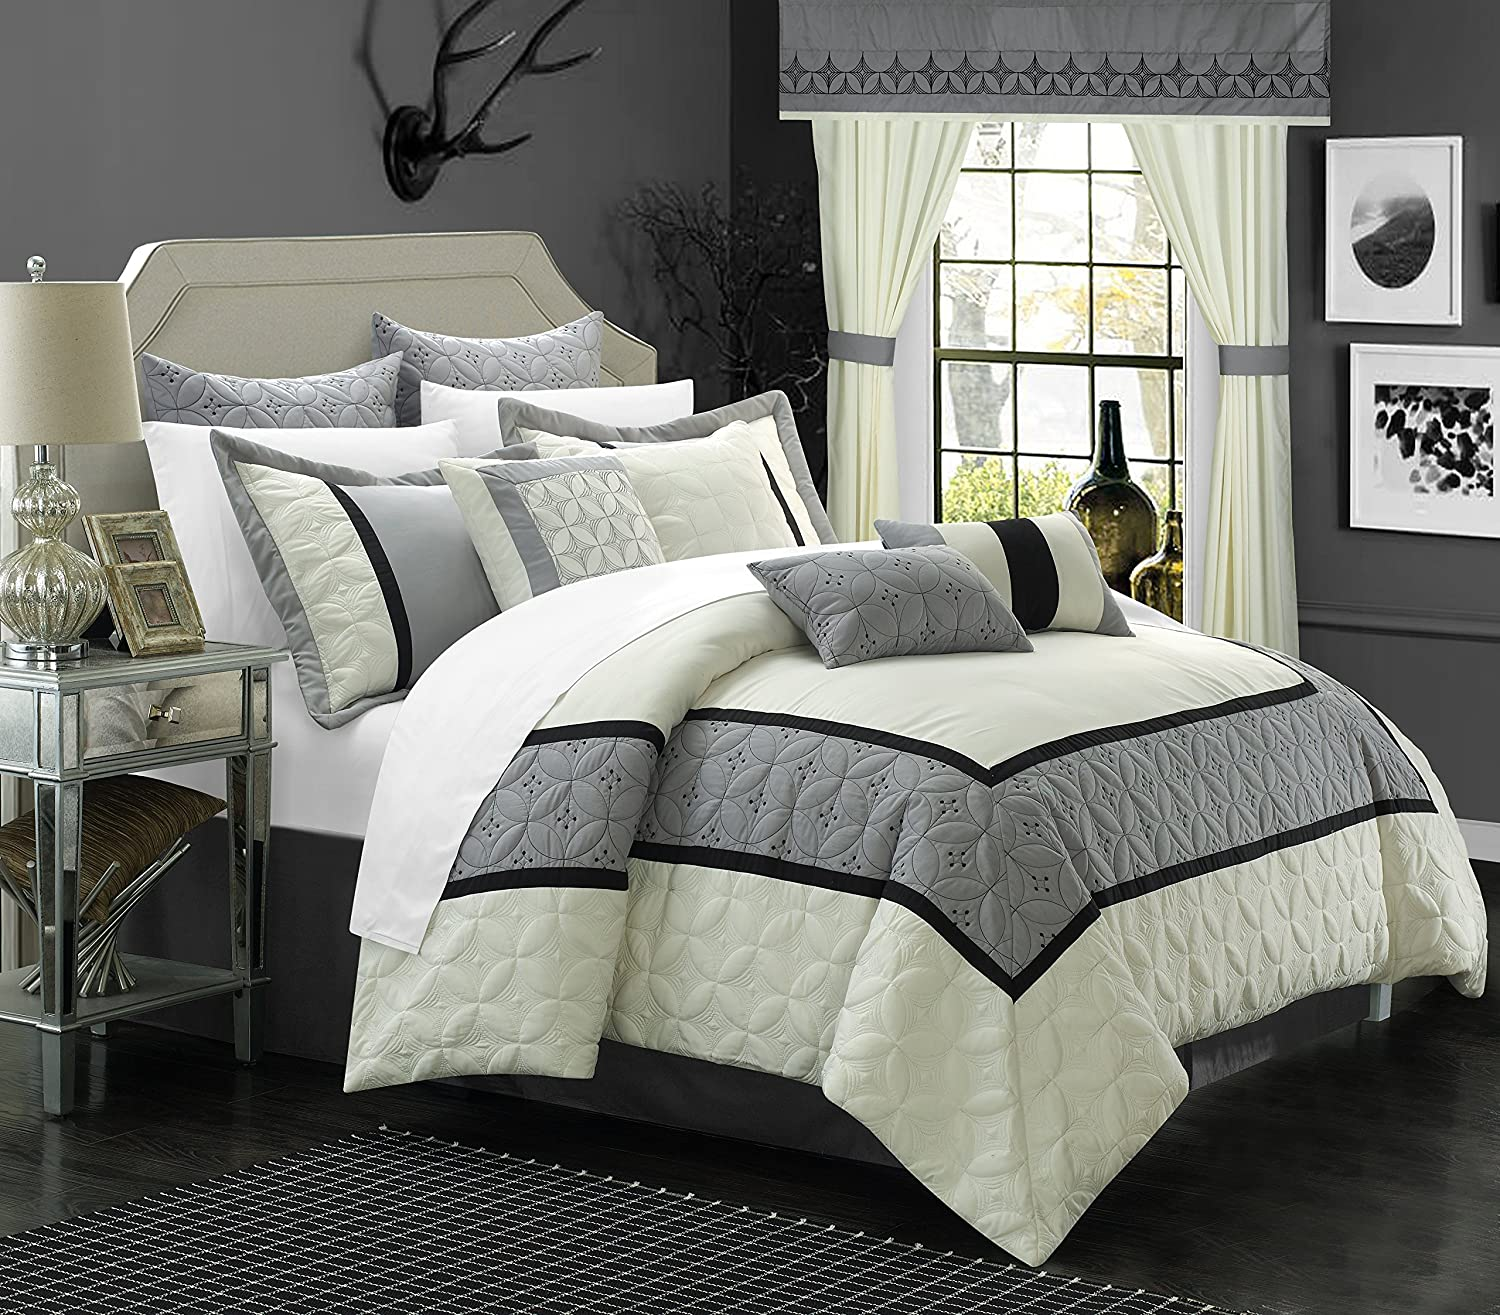 Chic Home 25 Piece Aida Bed in a Bag Comforter Set, King, White/Silver